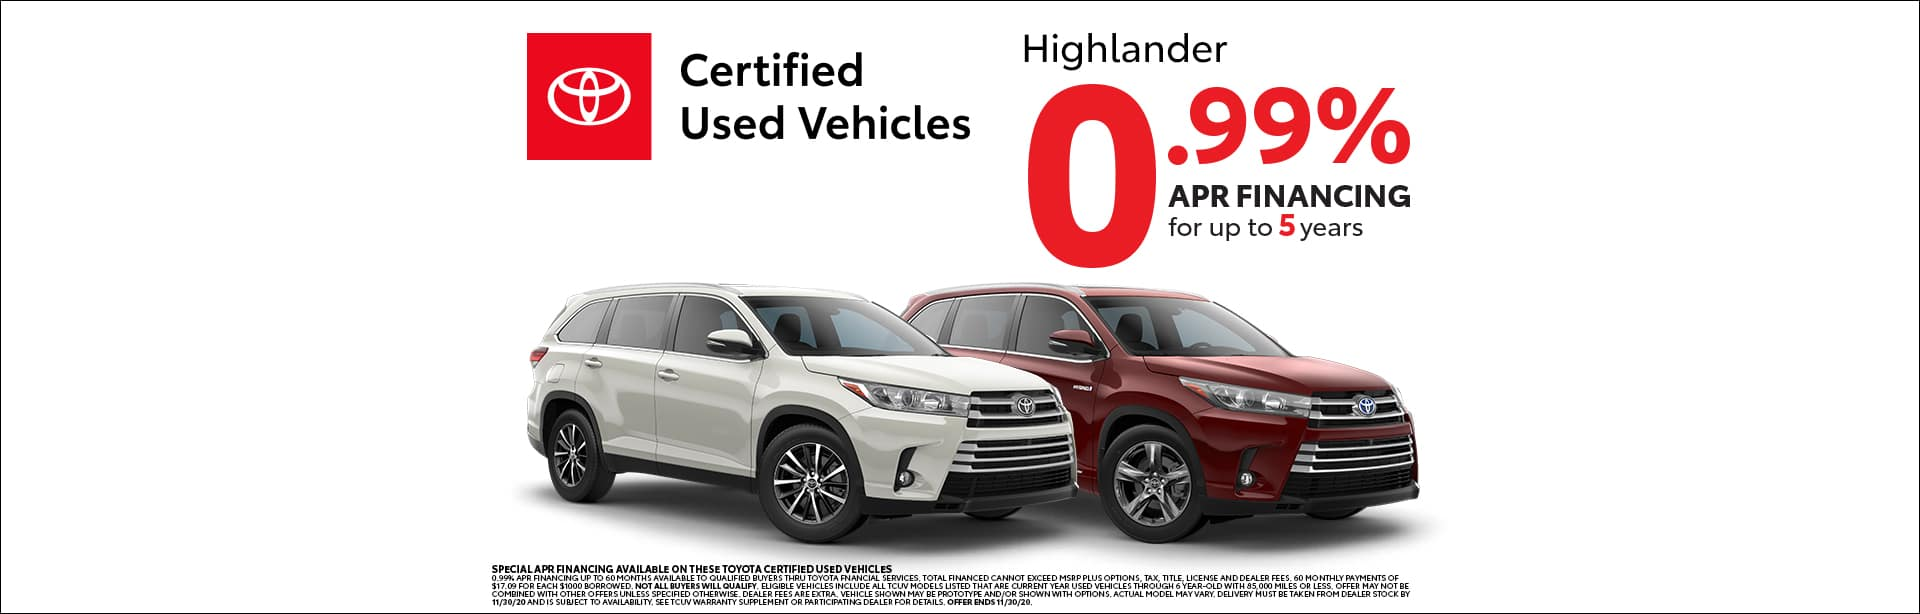 Certified Used Vehicles Highlander 0.99% APR Financing for up to 5 years